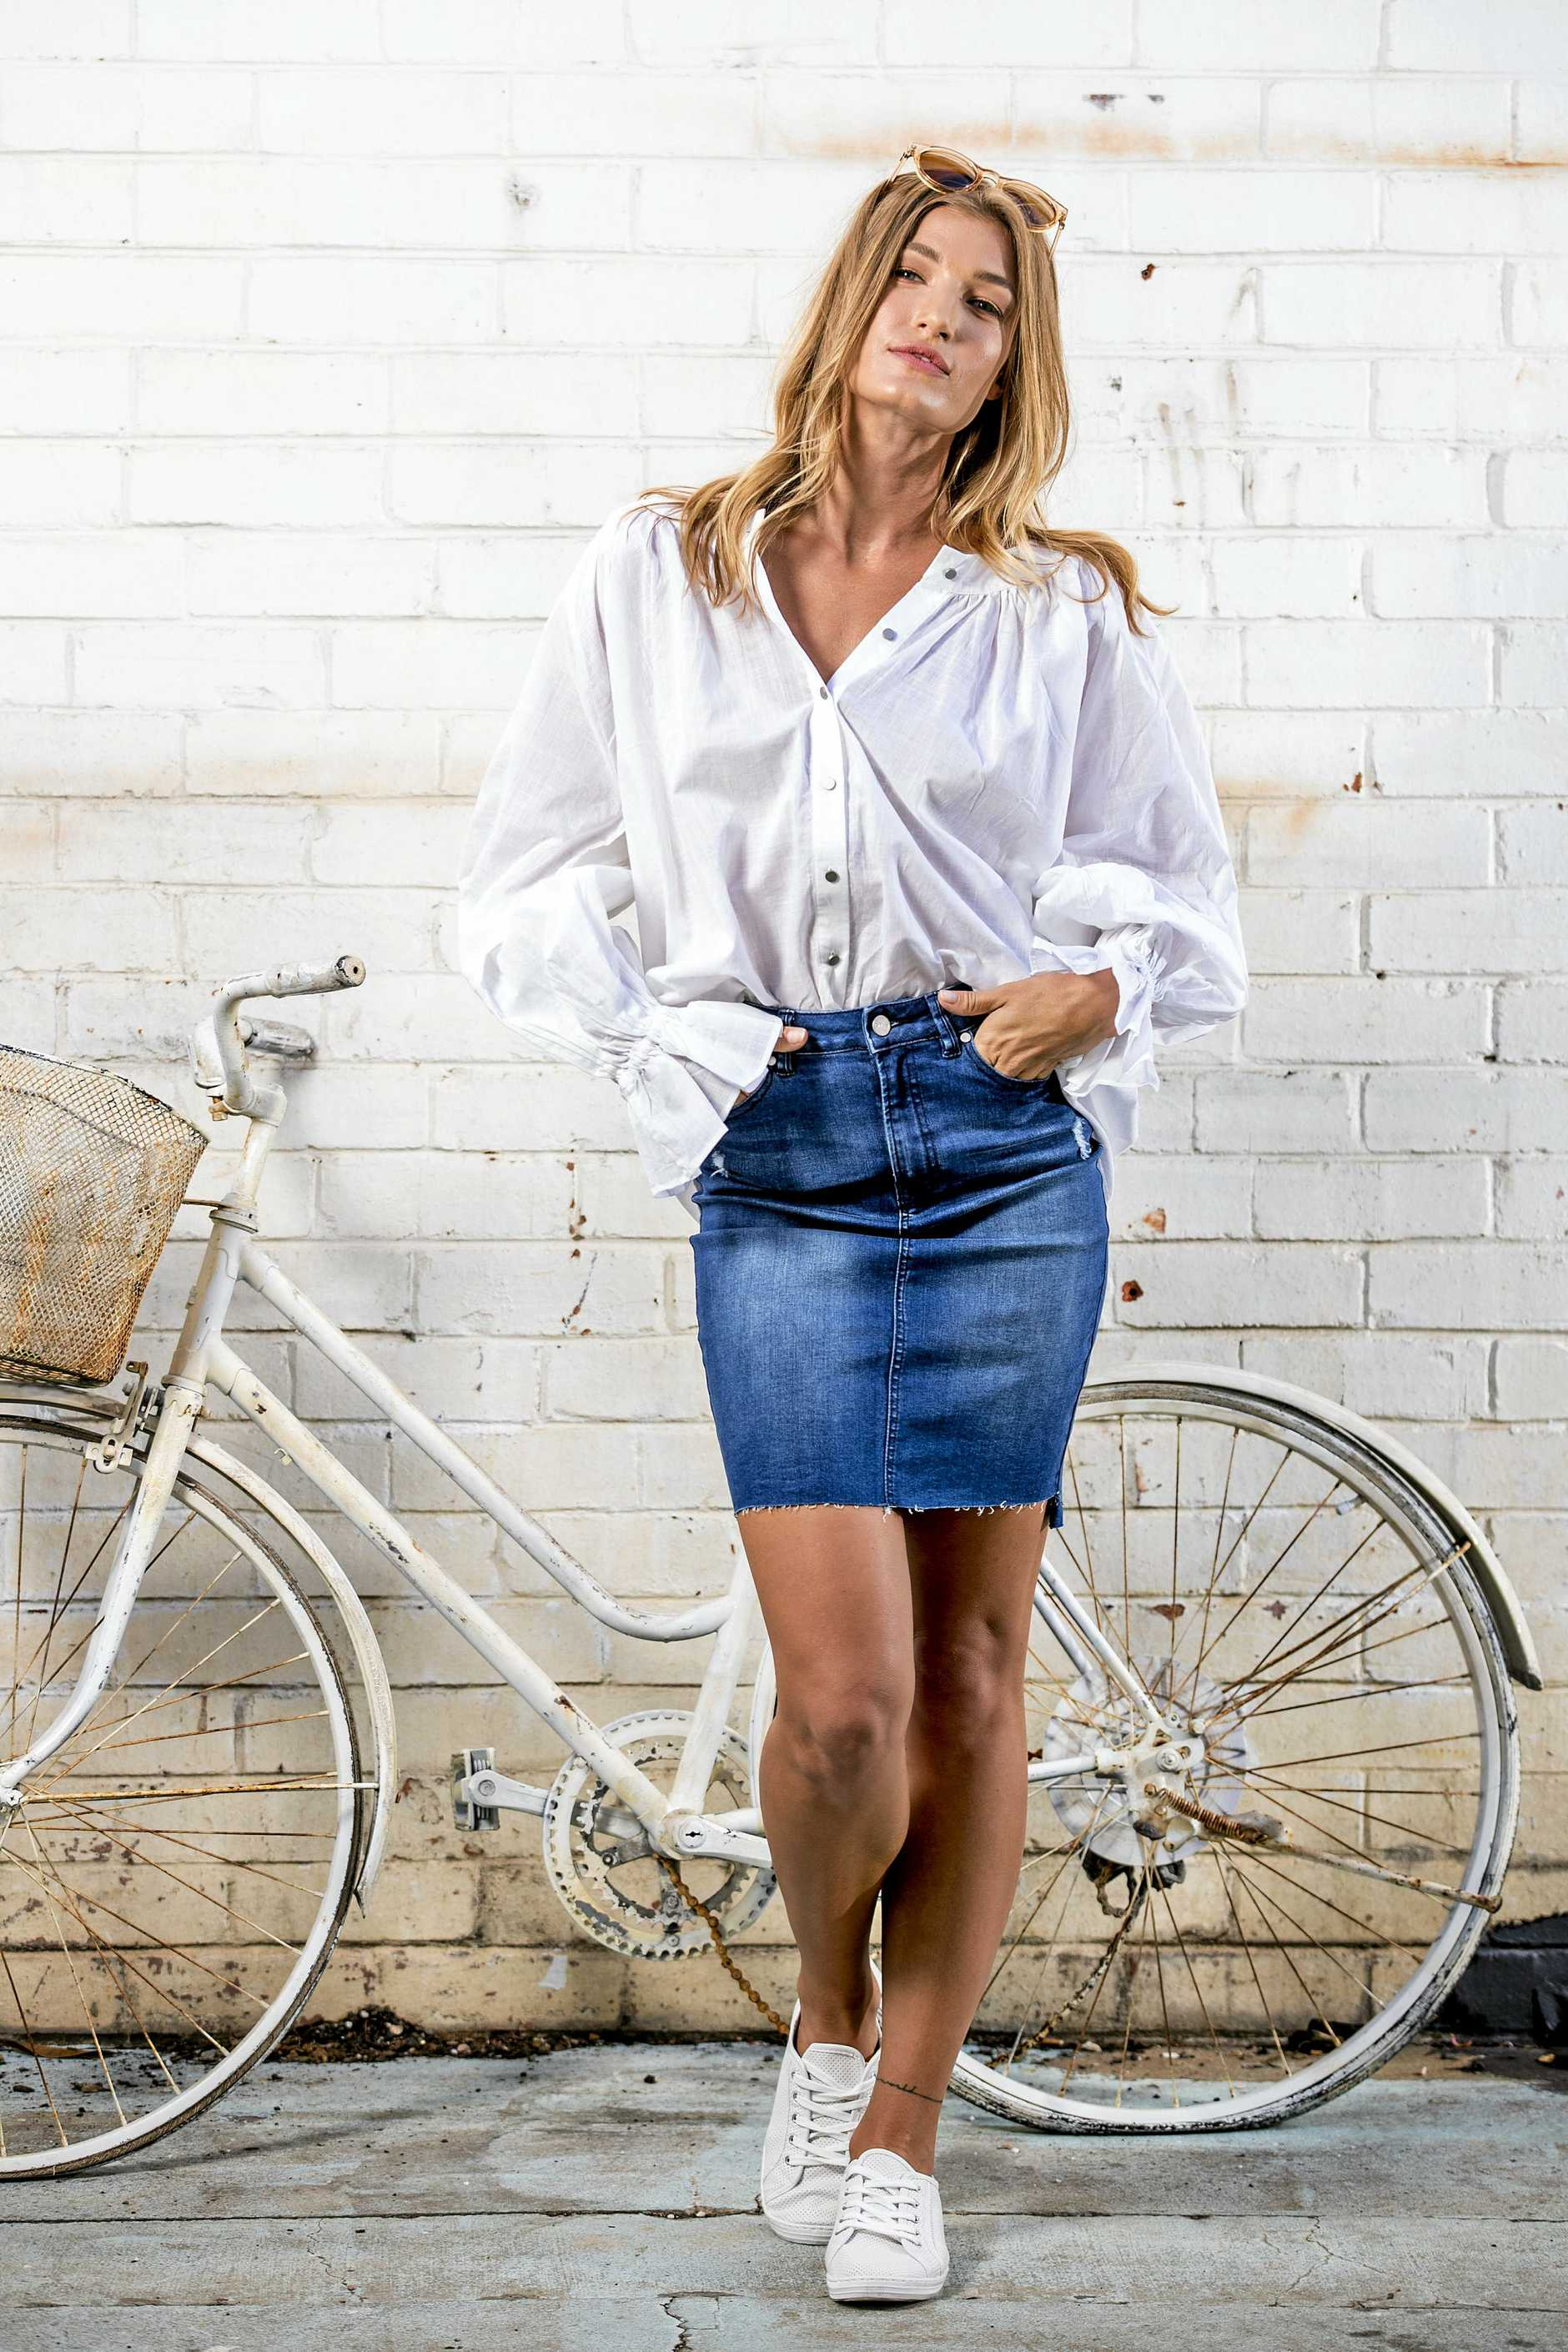 ### ON HOLD - MUST SEE Gold Coast Bulletin only Please check with Picture Editor before use ###Spring fashion spread for Gold Coast Eye, Styled by nmedia/Robina Town Centre, model Fanny Nylander from Que Models at The Borrowed Nursery at Mermaid Beach. Picture: Jerad Williams